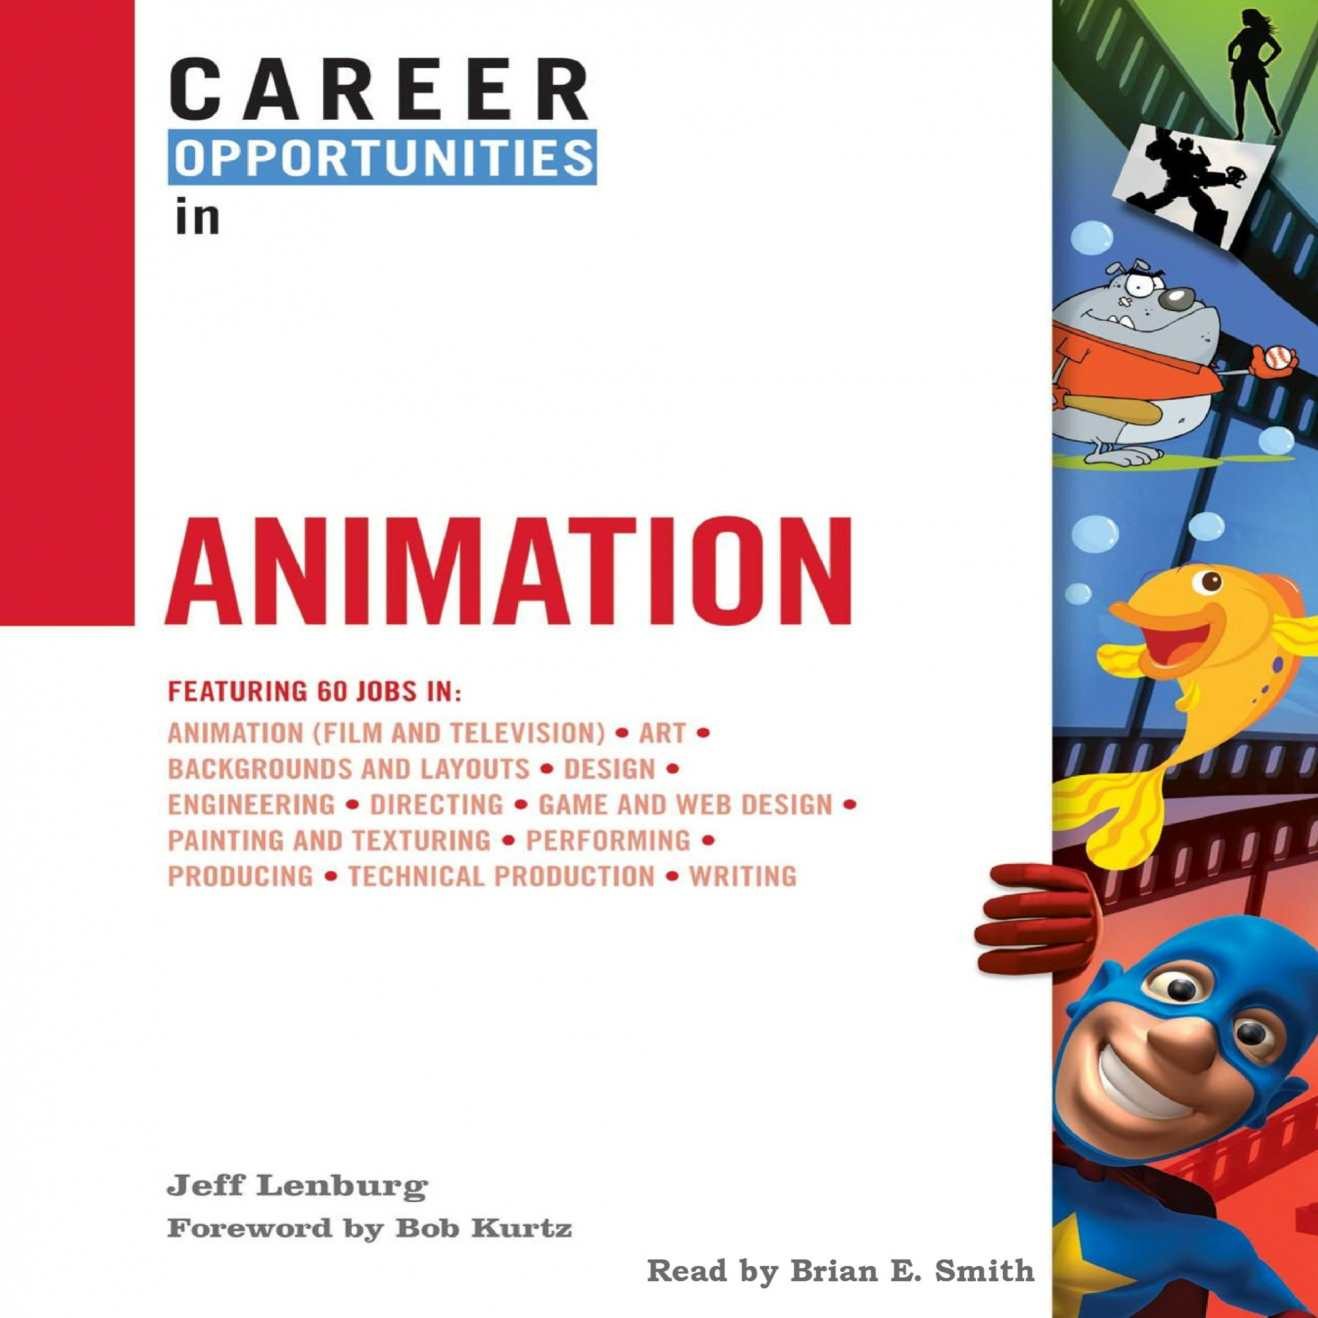 Jeff Lenburg's Career Opportunities in Animation